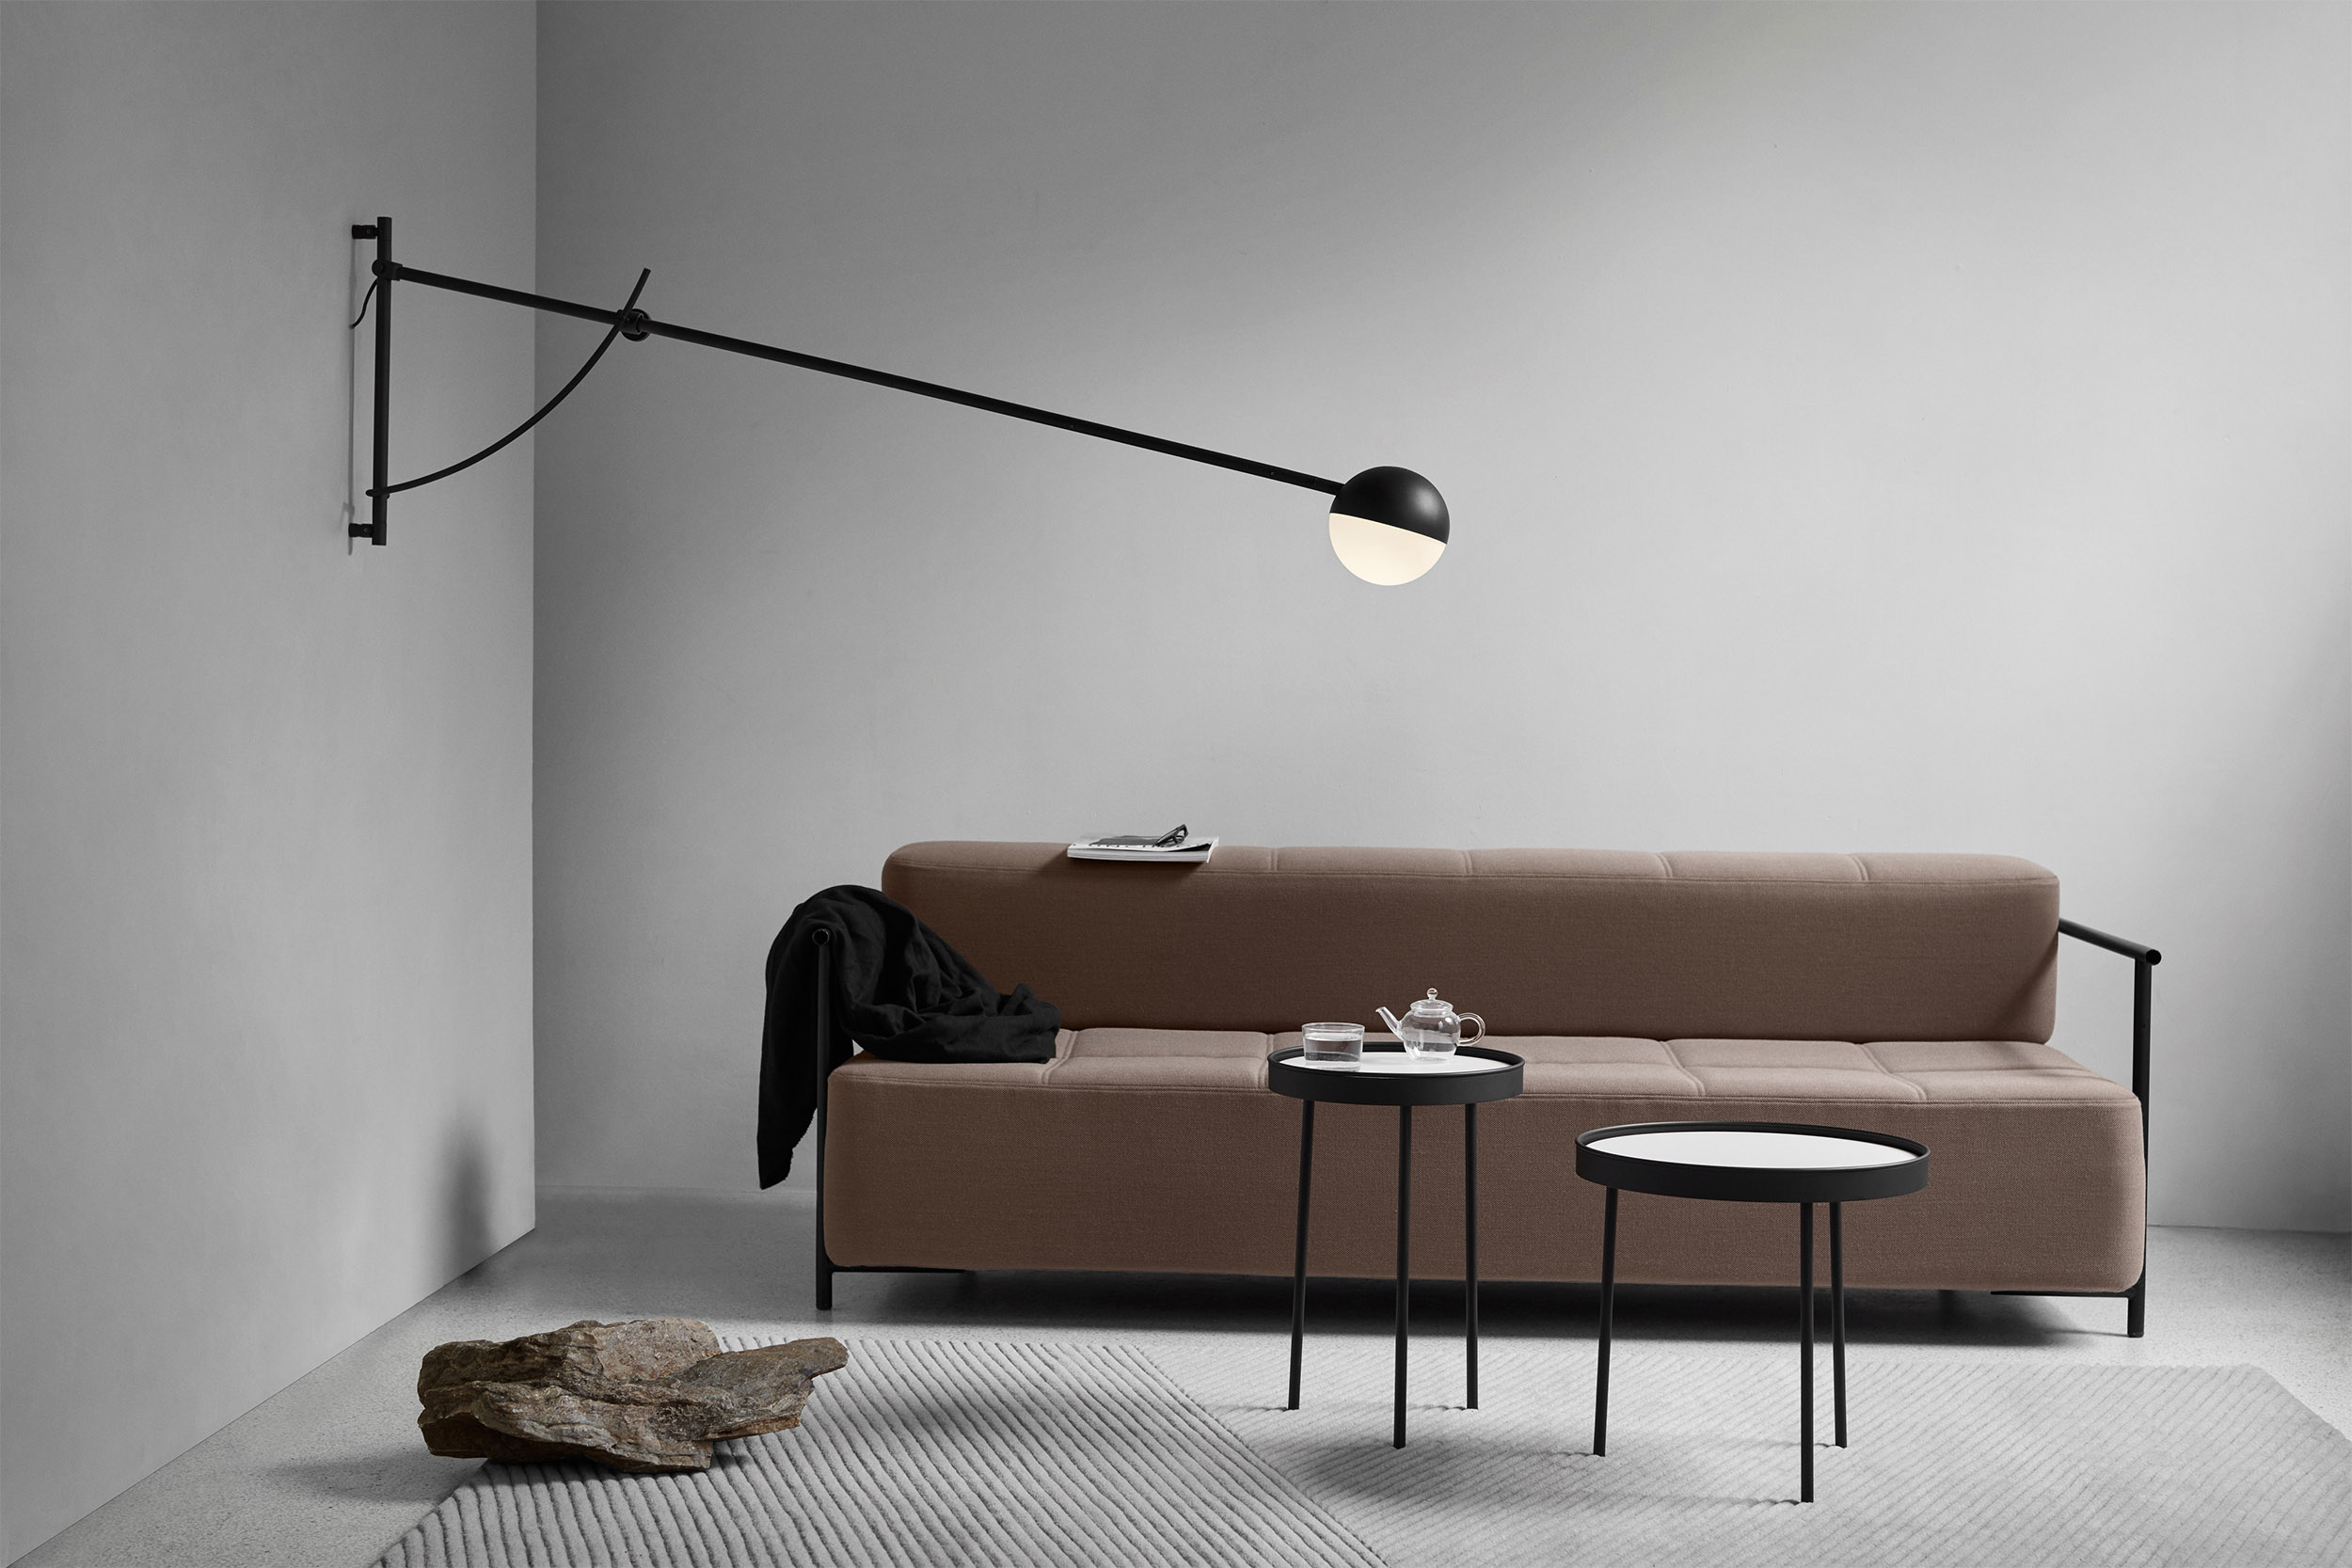 alancer_wall_lamp_livingroom_landscape_Northern